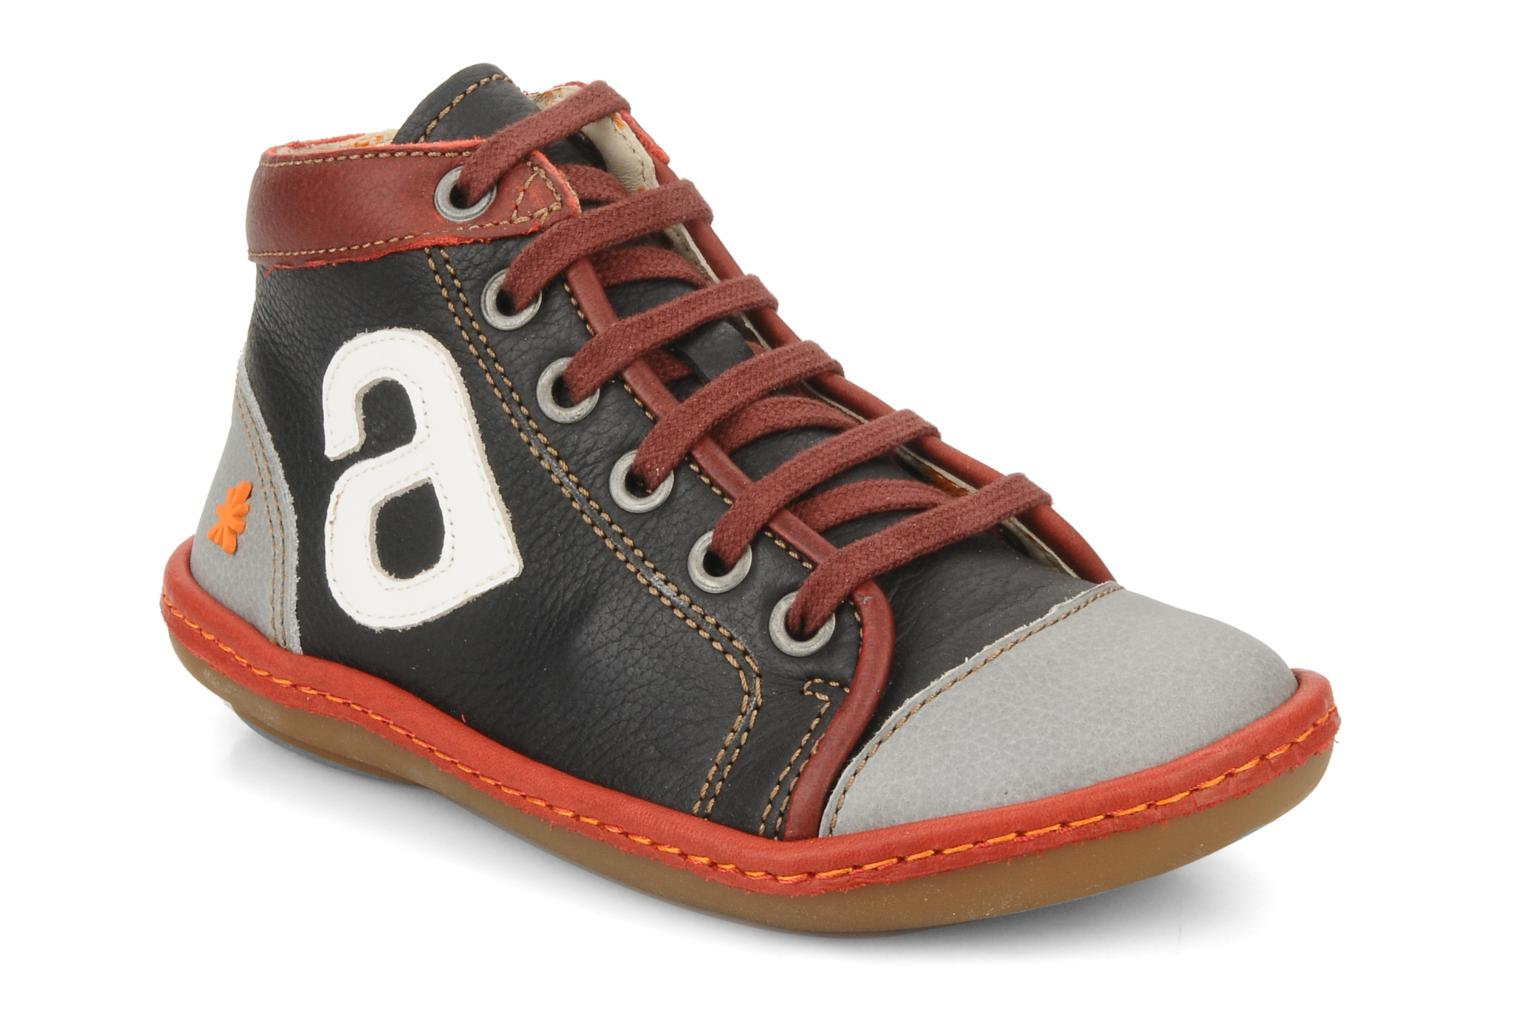 Kio 684 Black - red